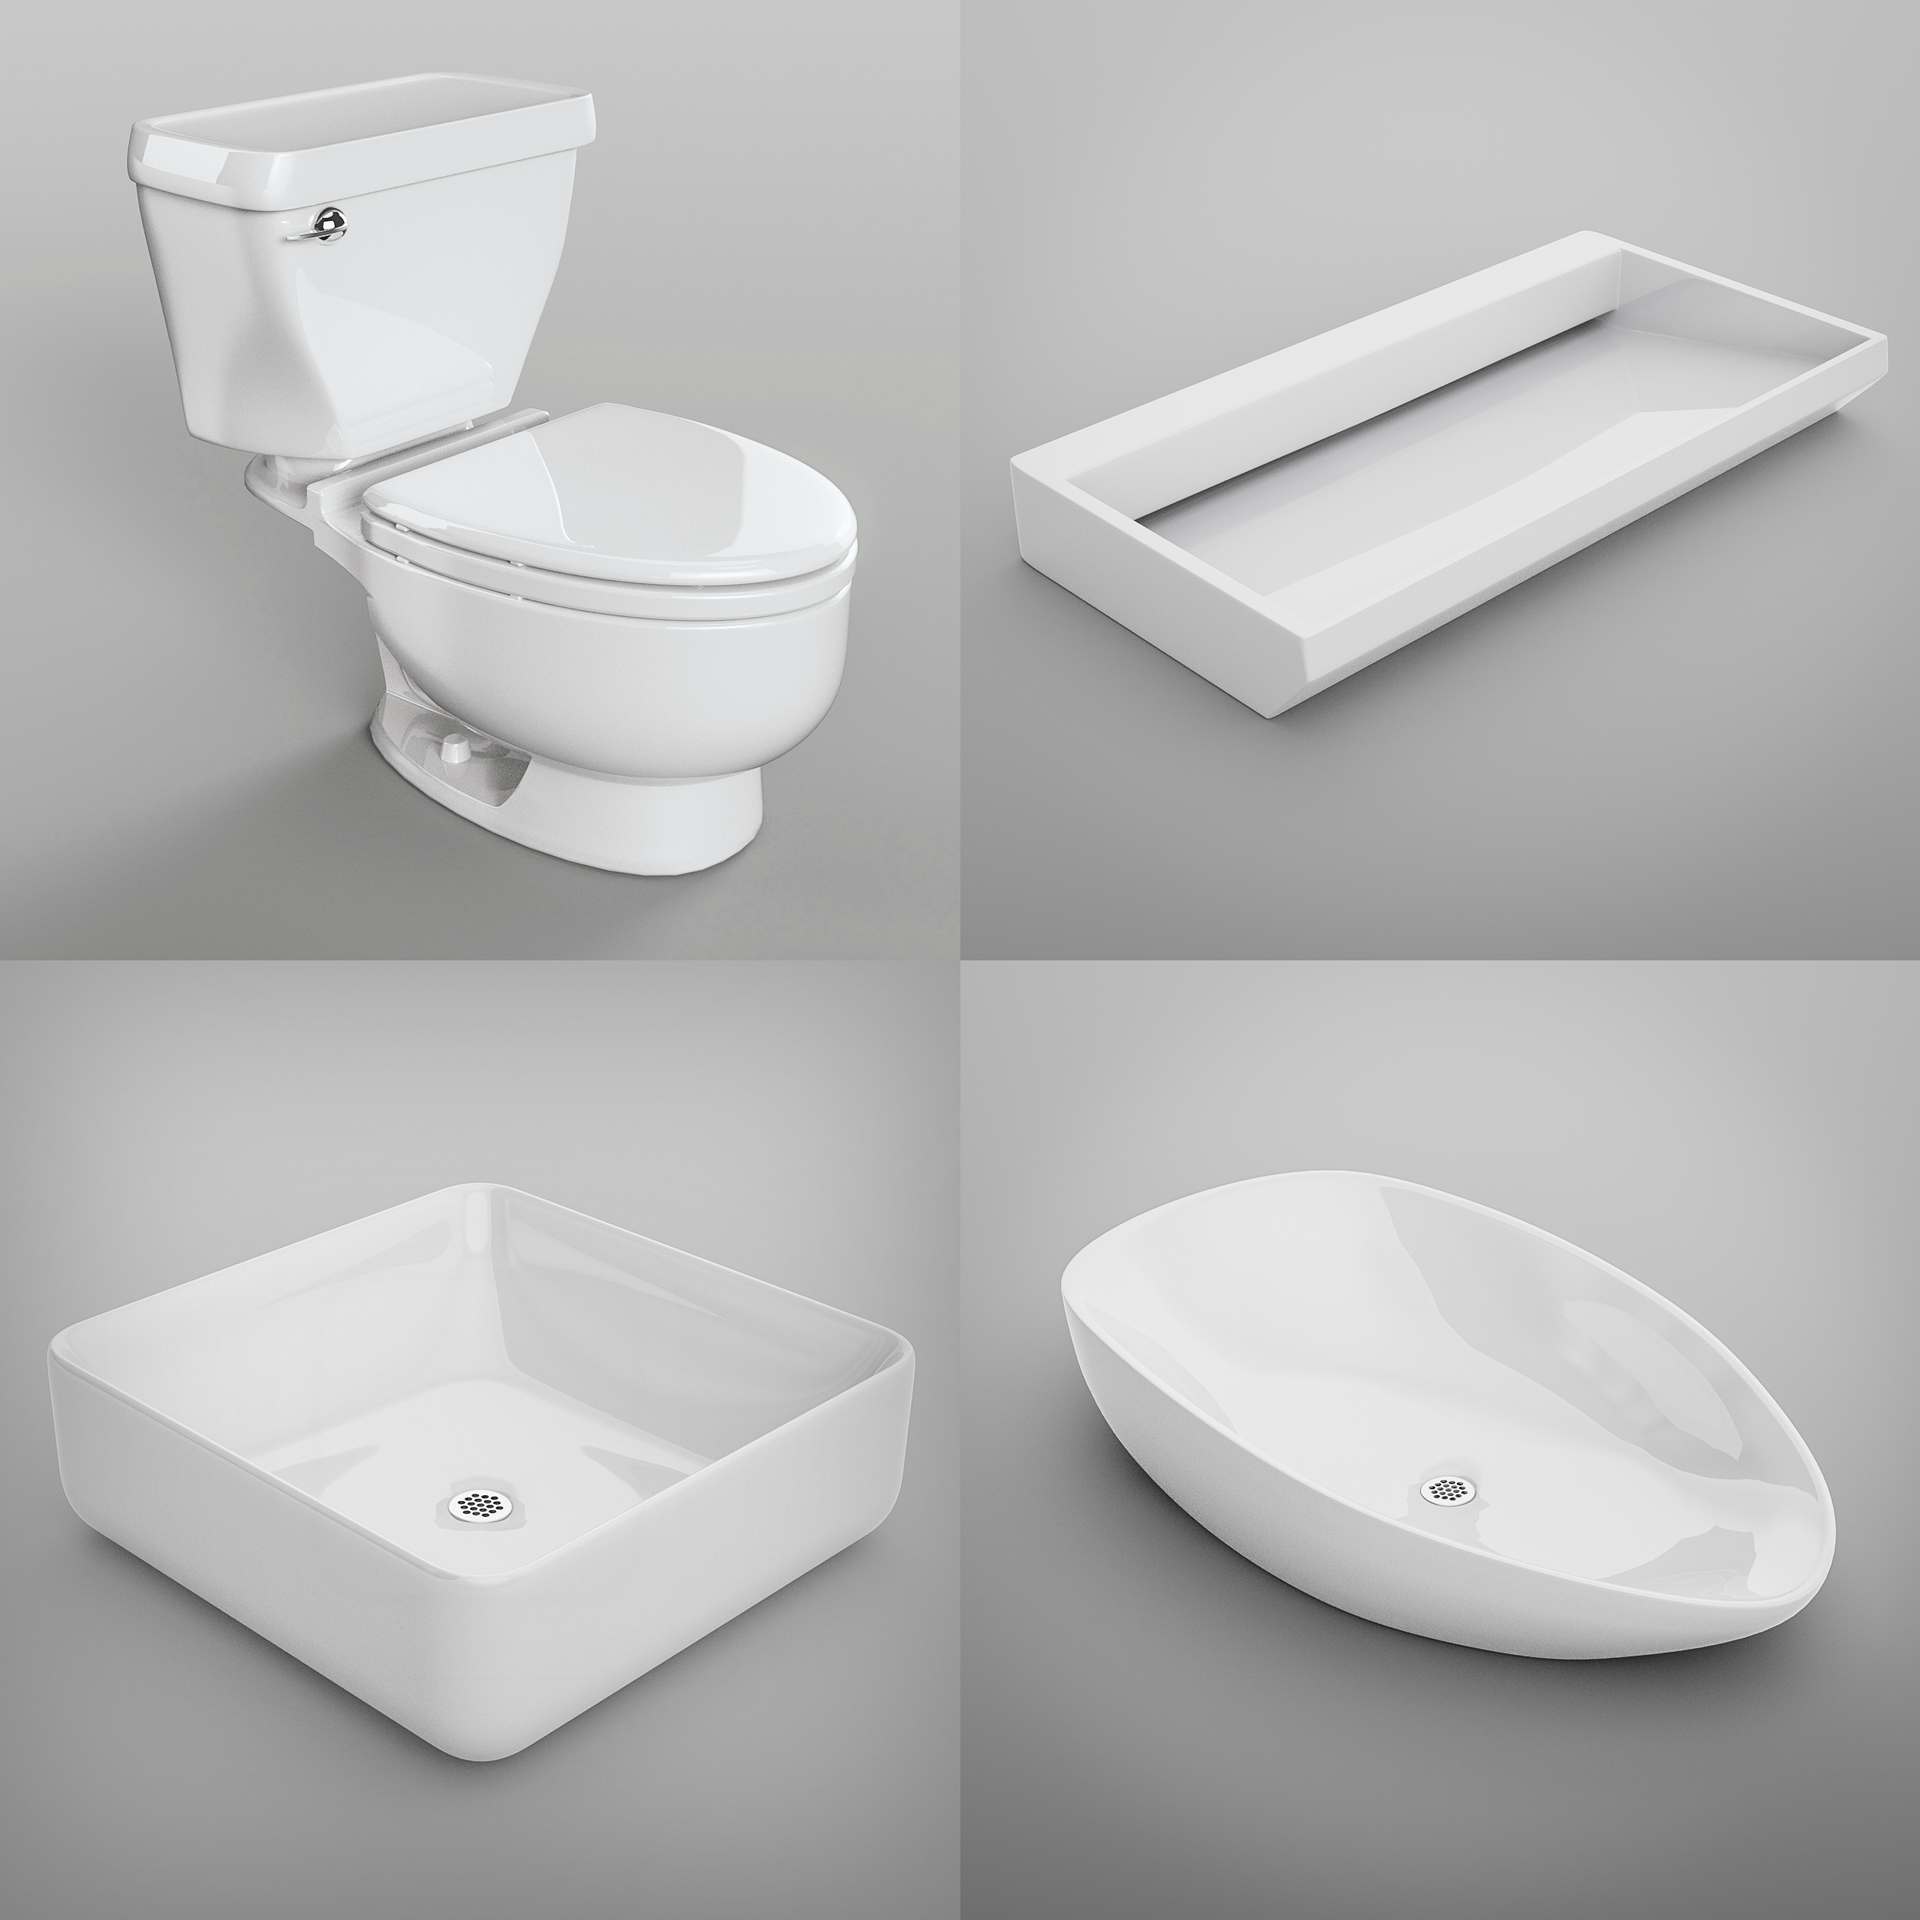 Product Visualisations 3D Model   A Series Of Ceramic Bathroom Fixtures  Created For A Client,